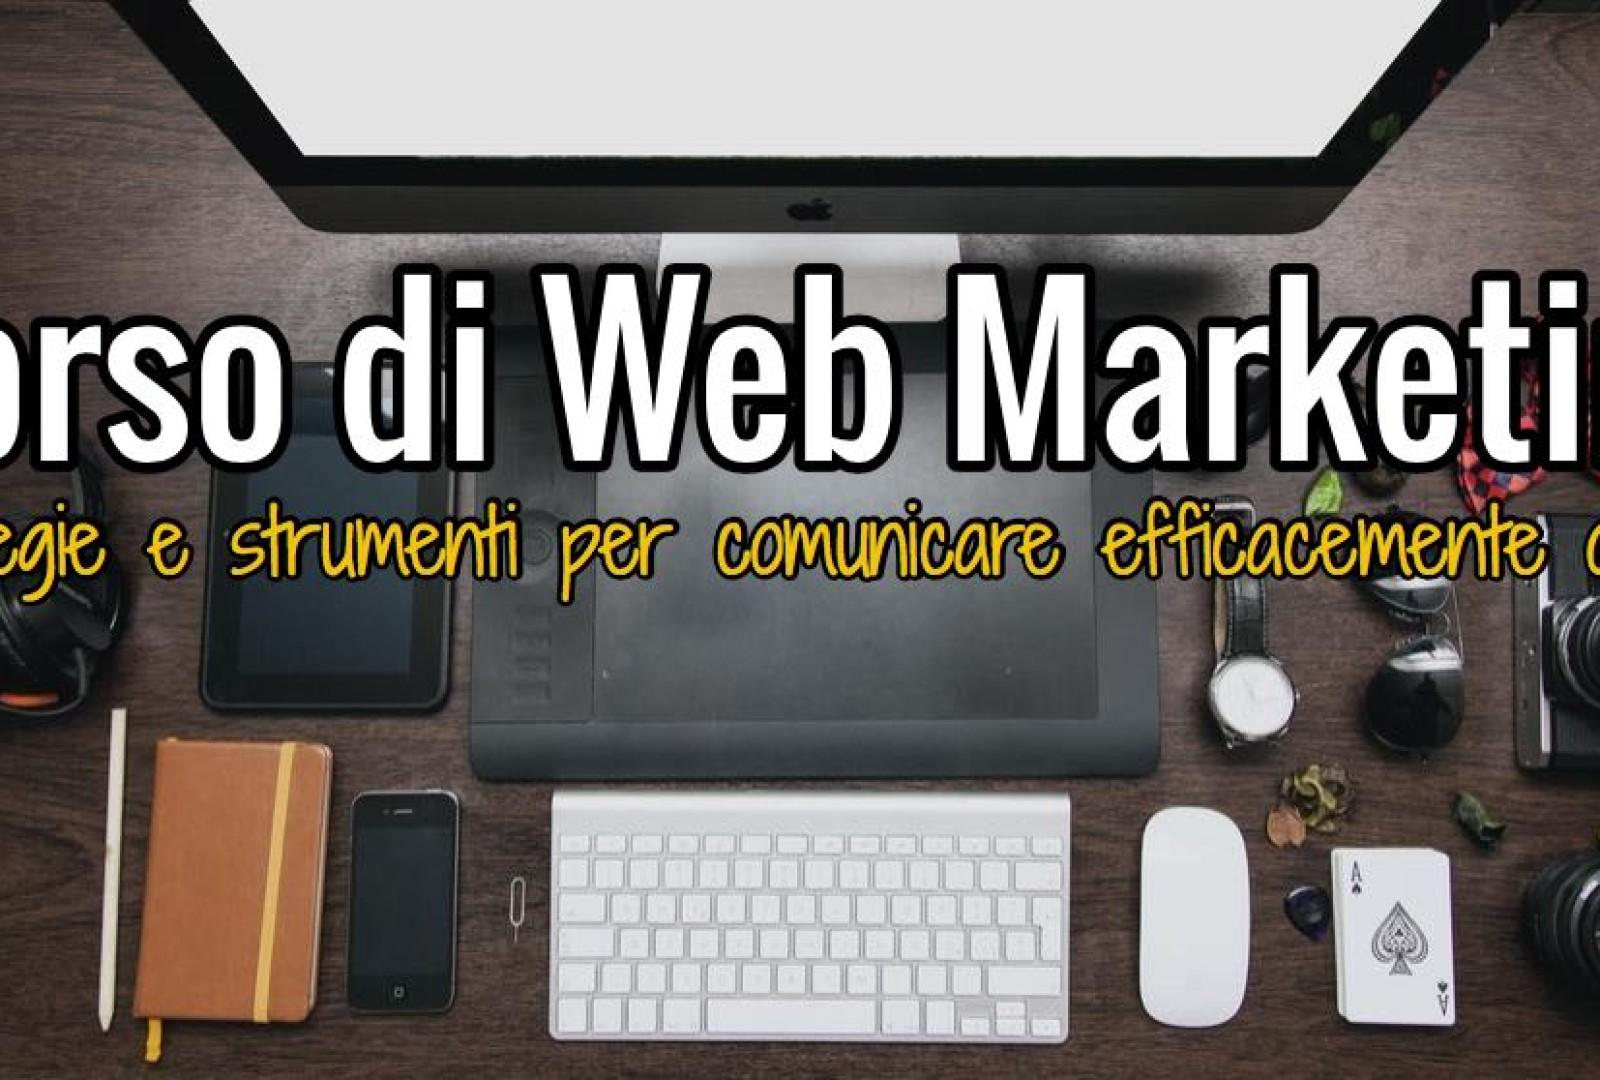 Centro Studi La Contrada – Corso di Web Marketing